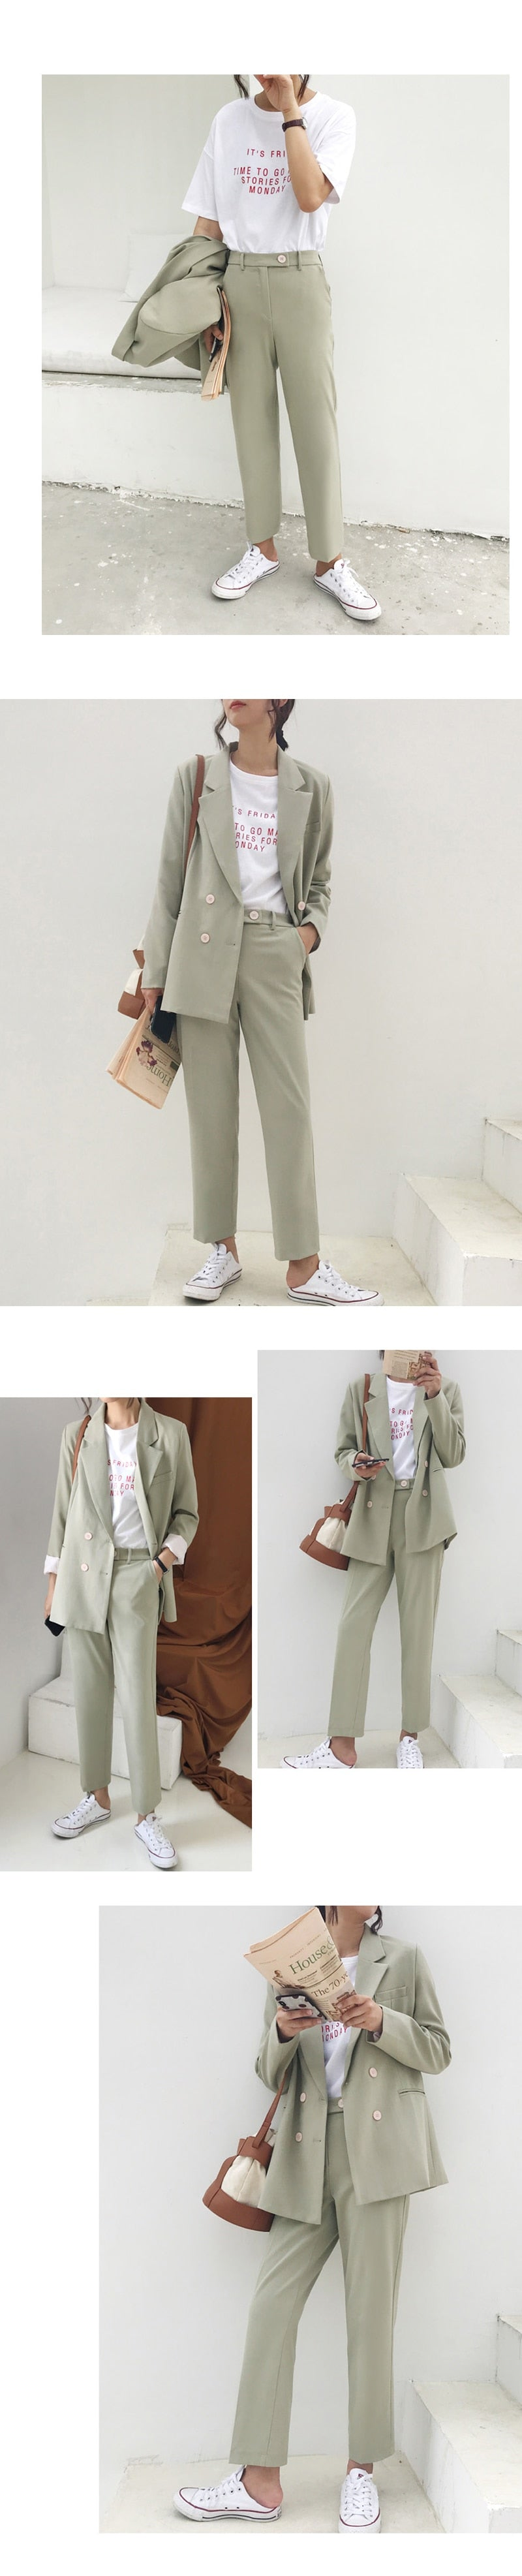 Vintage Autumn Winter Thicken Women Pant Suit Light Green Notched Blazer Jacket & Pant 2020 Office Wear Women Suits Female Sets